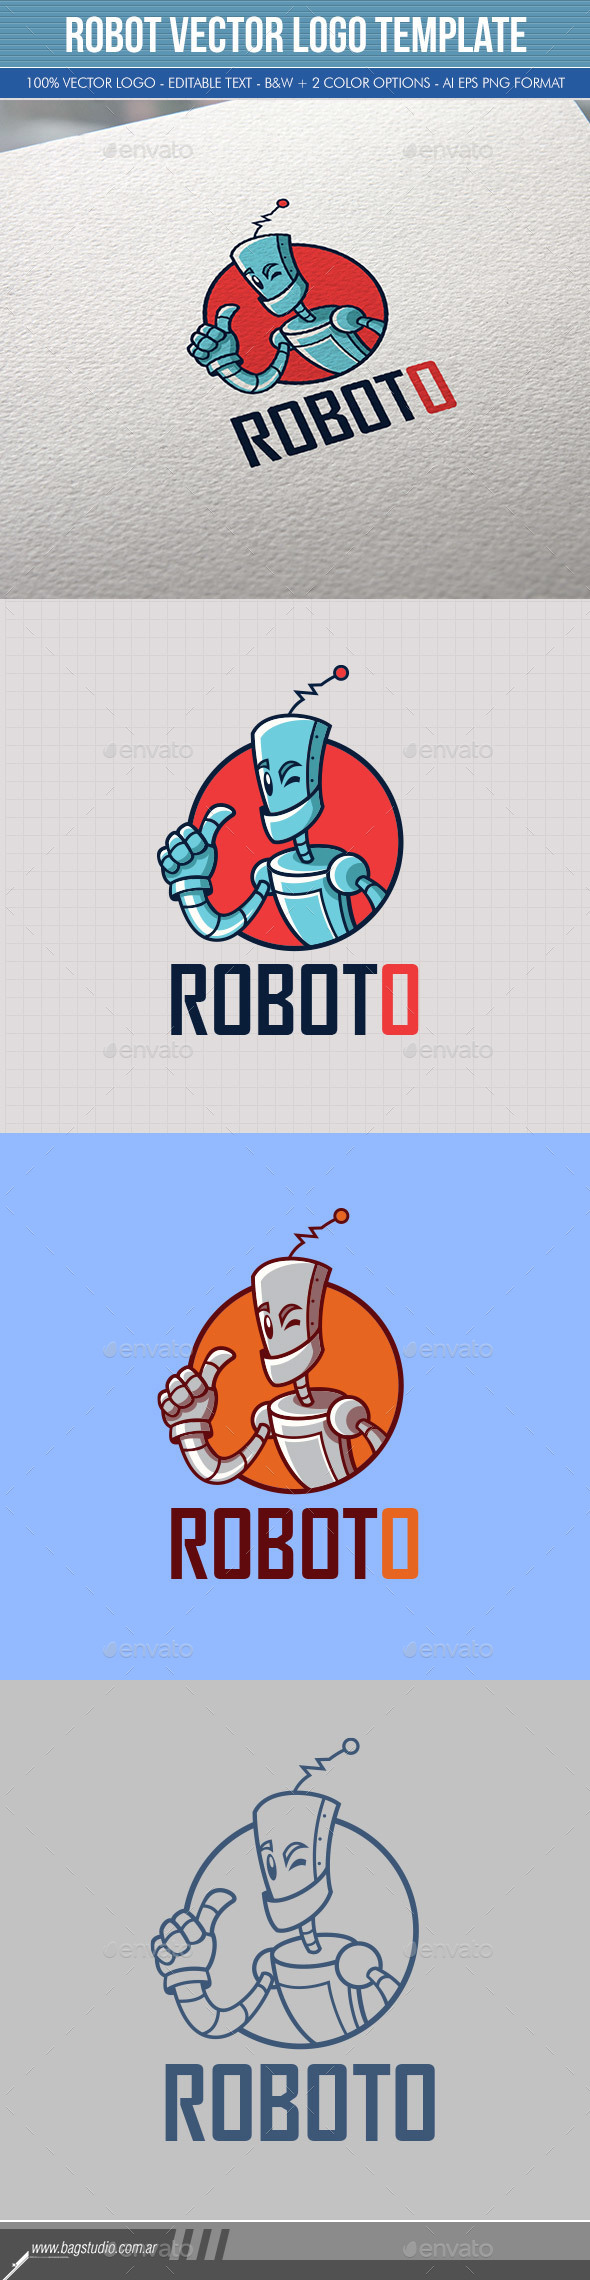 Robot Vector Logo Template - Objects Logo Templates